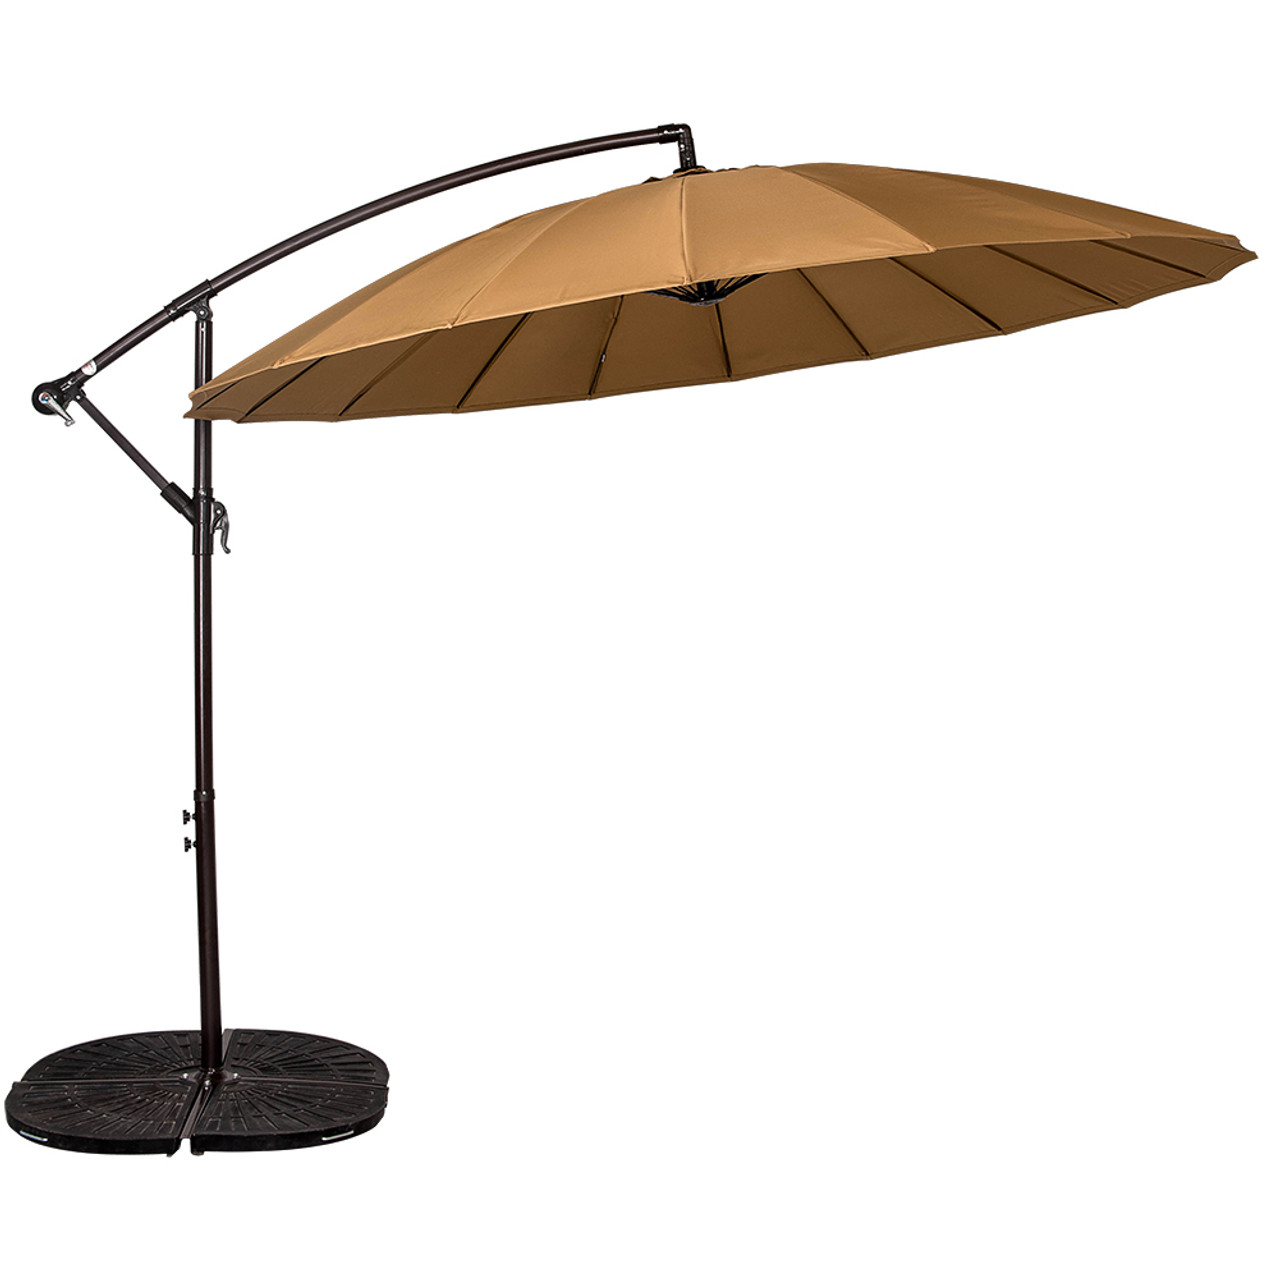 furniture s patio outdoor lights with half accessories canada tilt umbrellas led umbrella ft lowe offset solar